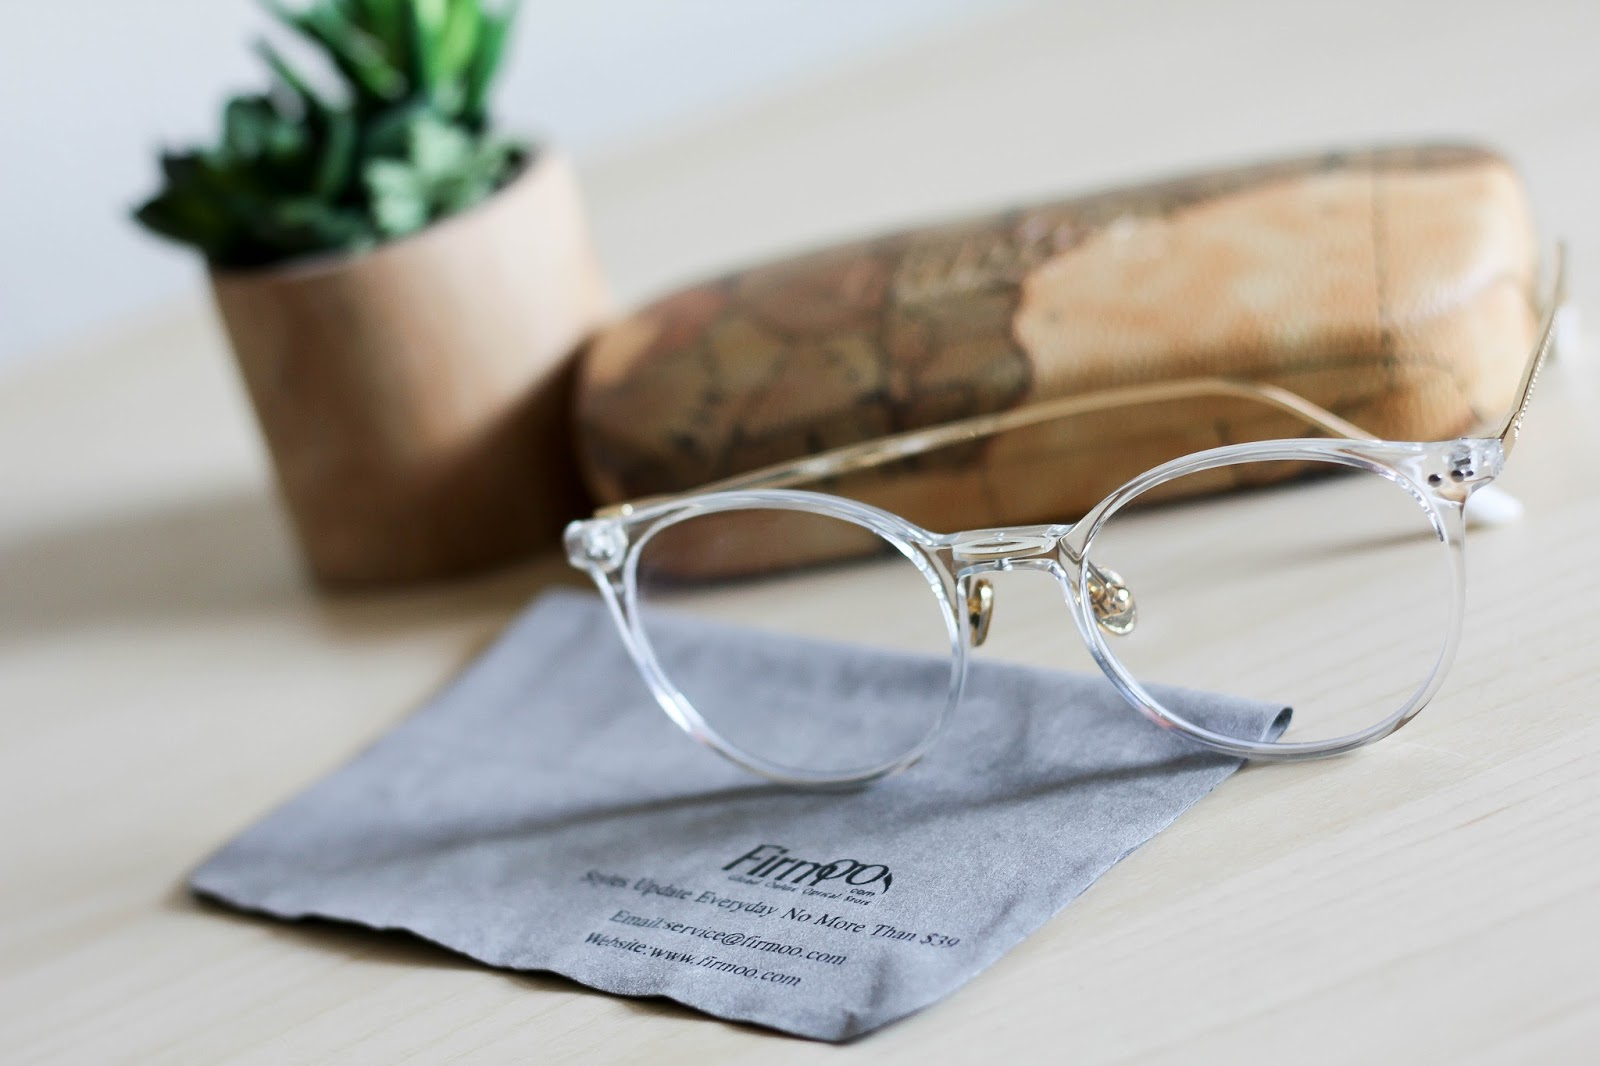 f66904d948 Firmoo is an online optical retailer offering prescription and  non-prescription eyewear for ...